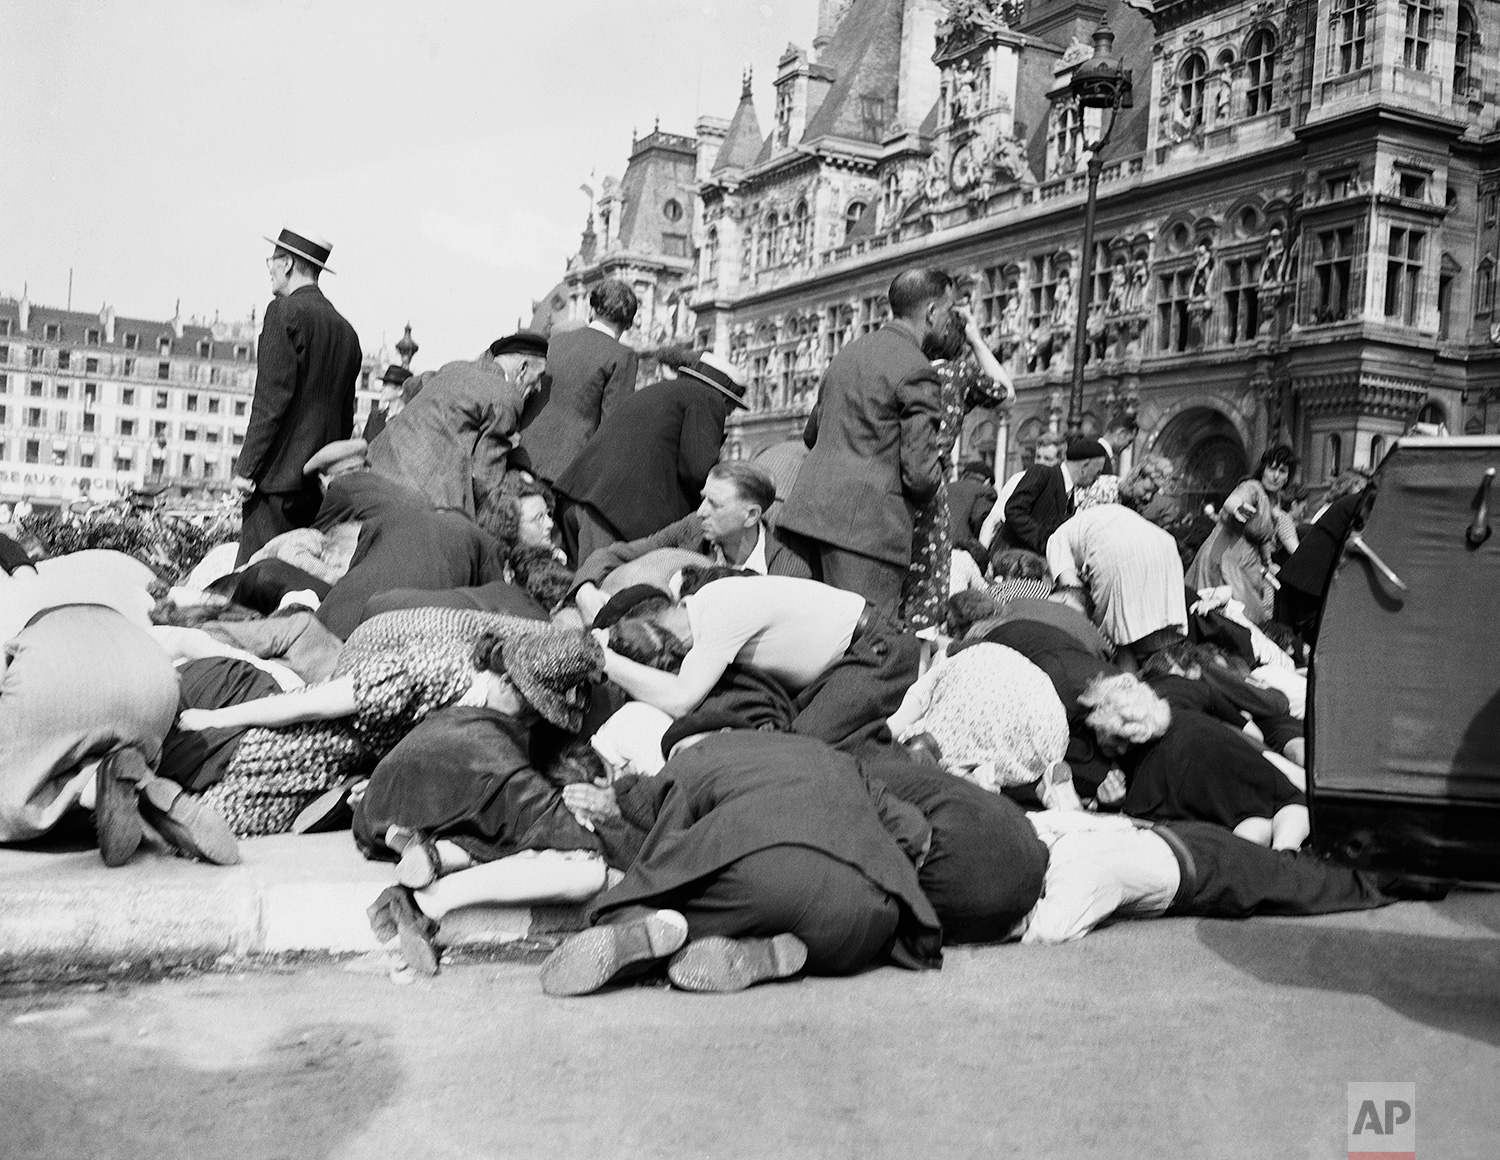 Parisians drop to the ground to duck sniper bullets, as firing starts at the Place de L'Hotel de Ville, in Paris, during liberation celebrations on August 26, 1944. City hall is in background, right. (AP Photo/Peter J. Carroll)